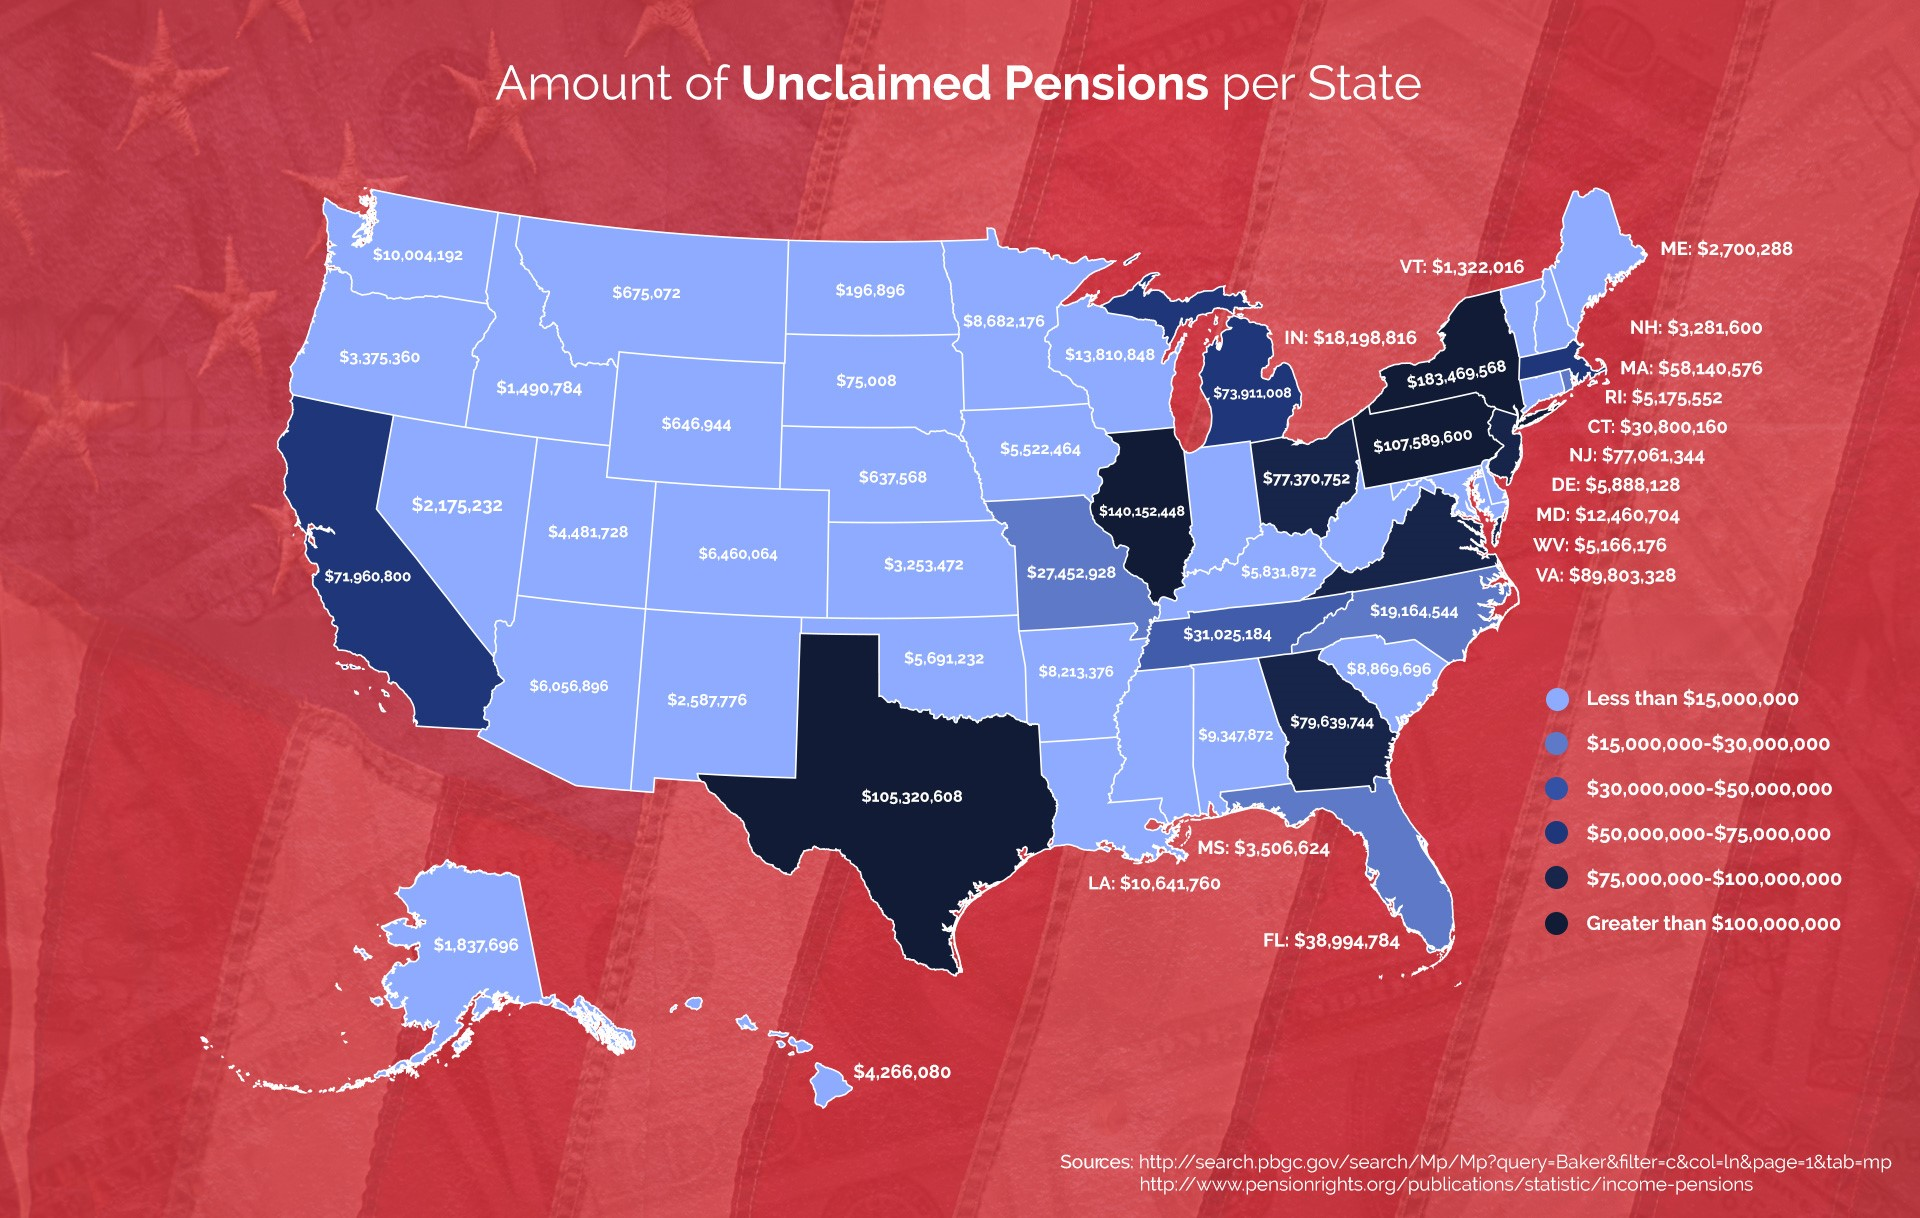 amount-of-unclaimed-retirement-pensions-by-state-us